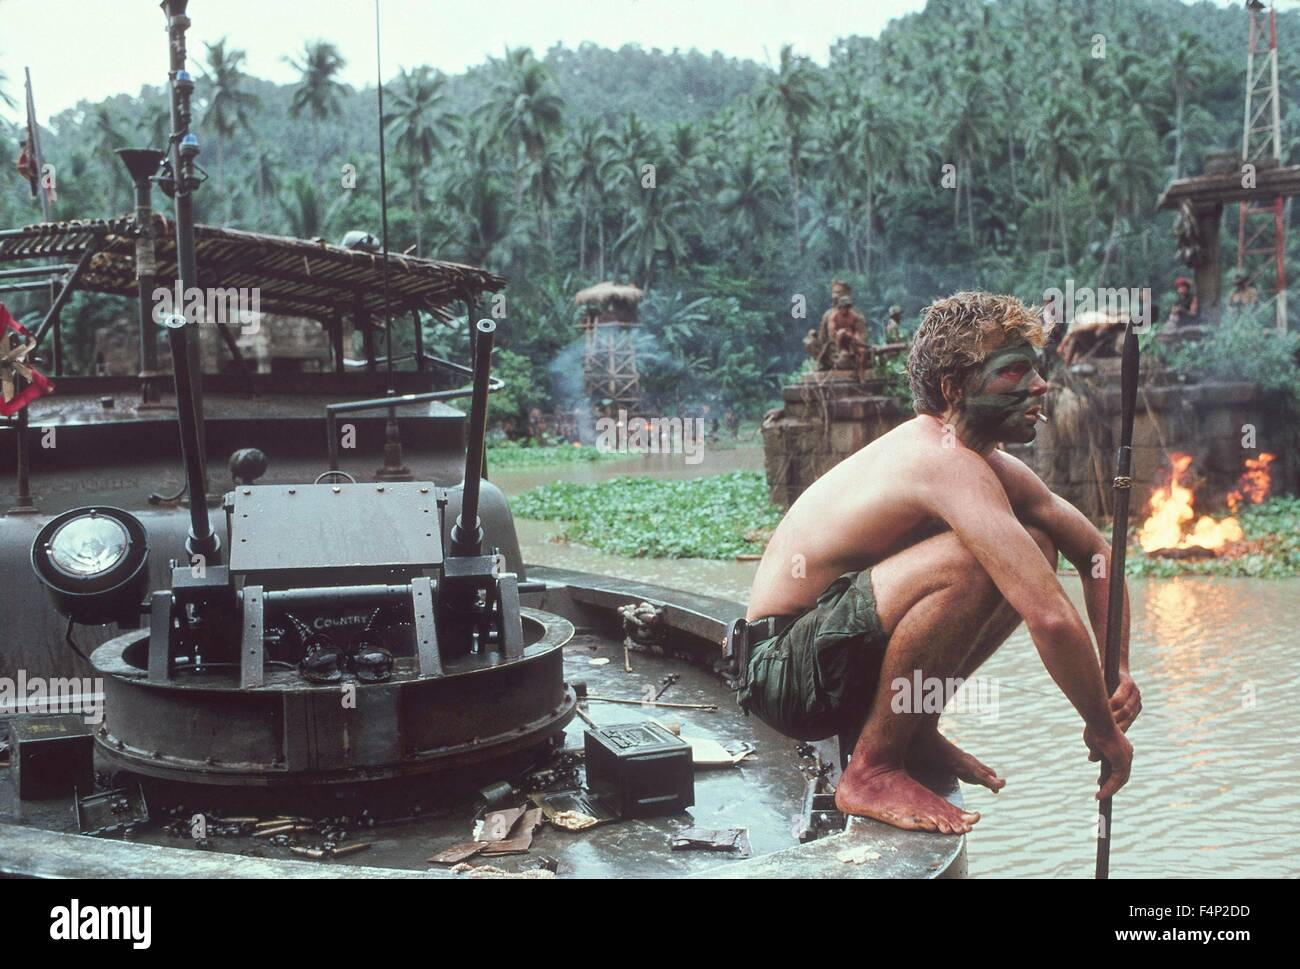 Apocalypse Now 1979 directed by Francis Ford Coppola - Stock Image